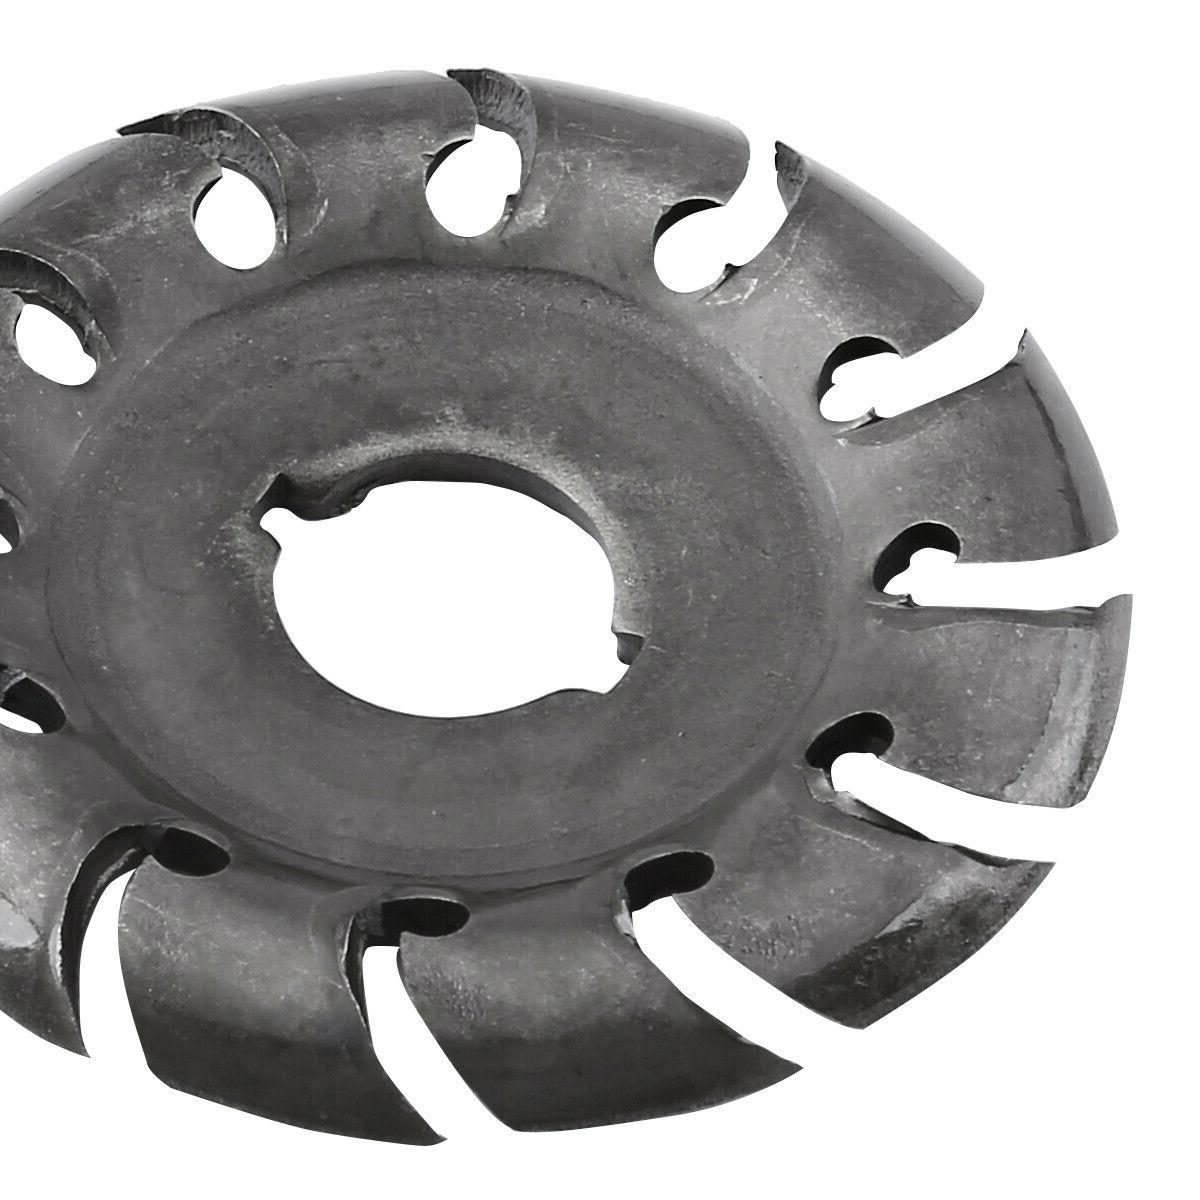 Woodworking Angle Grinder Disc Carving Cutting Shaping